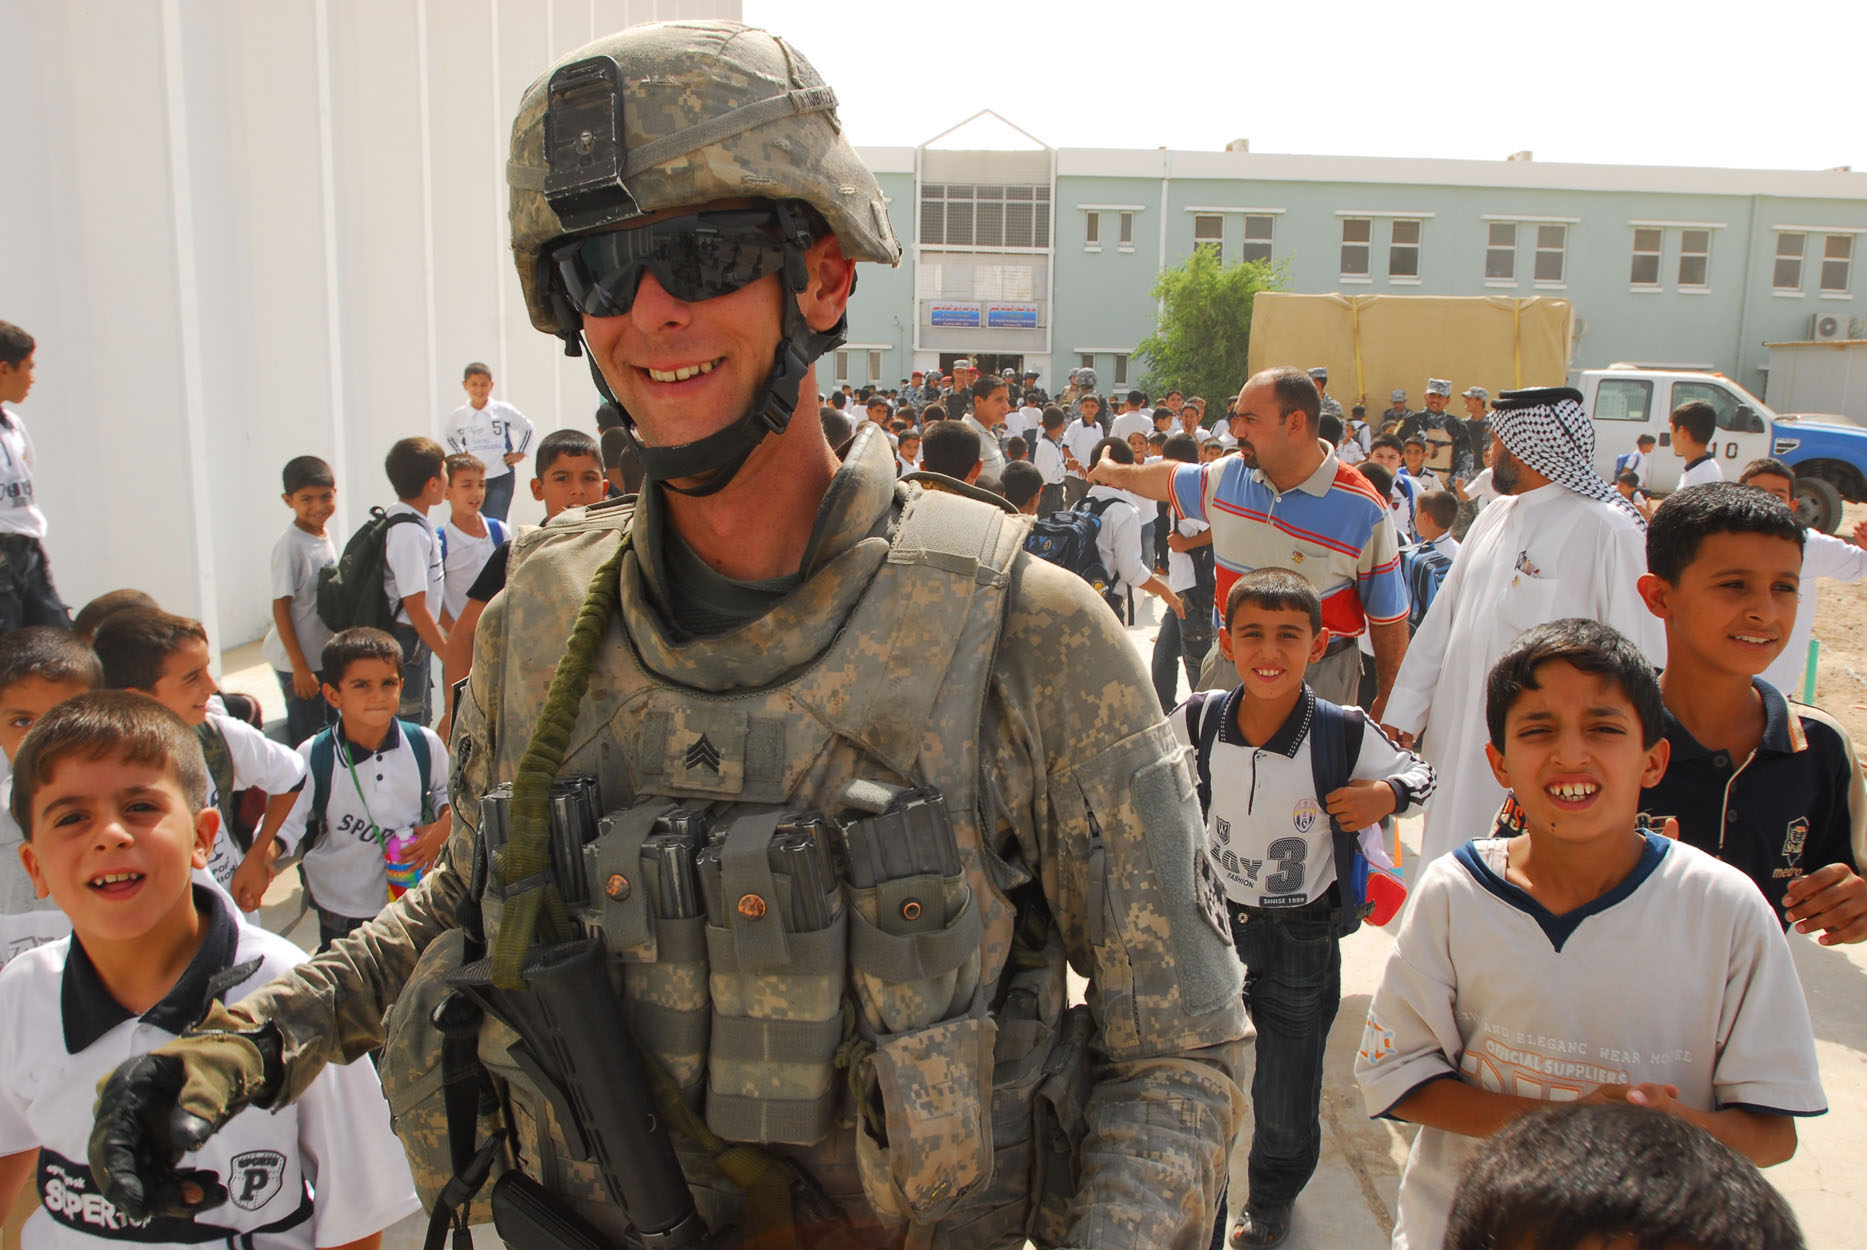 U.S. Army Sgt. Jeremy Brown, assigned to the 4th Infantry Division's 1st Brigade Combat Team, provides